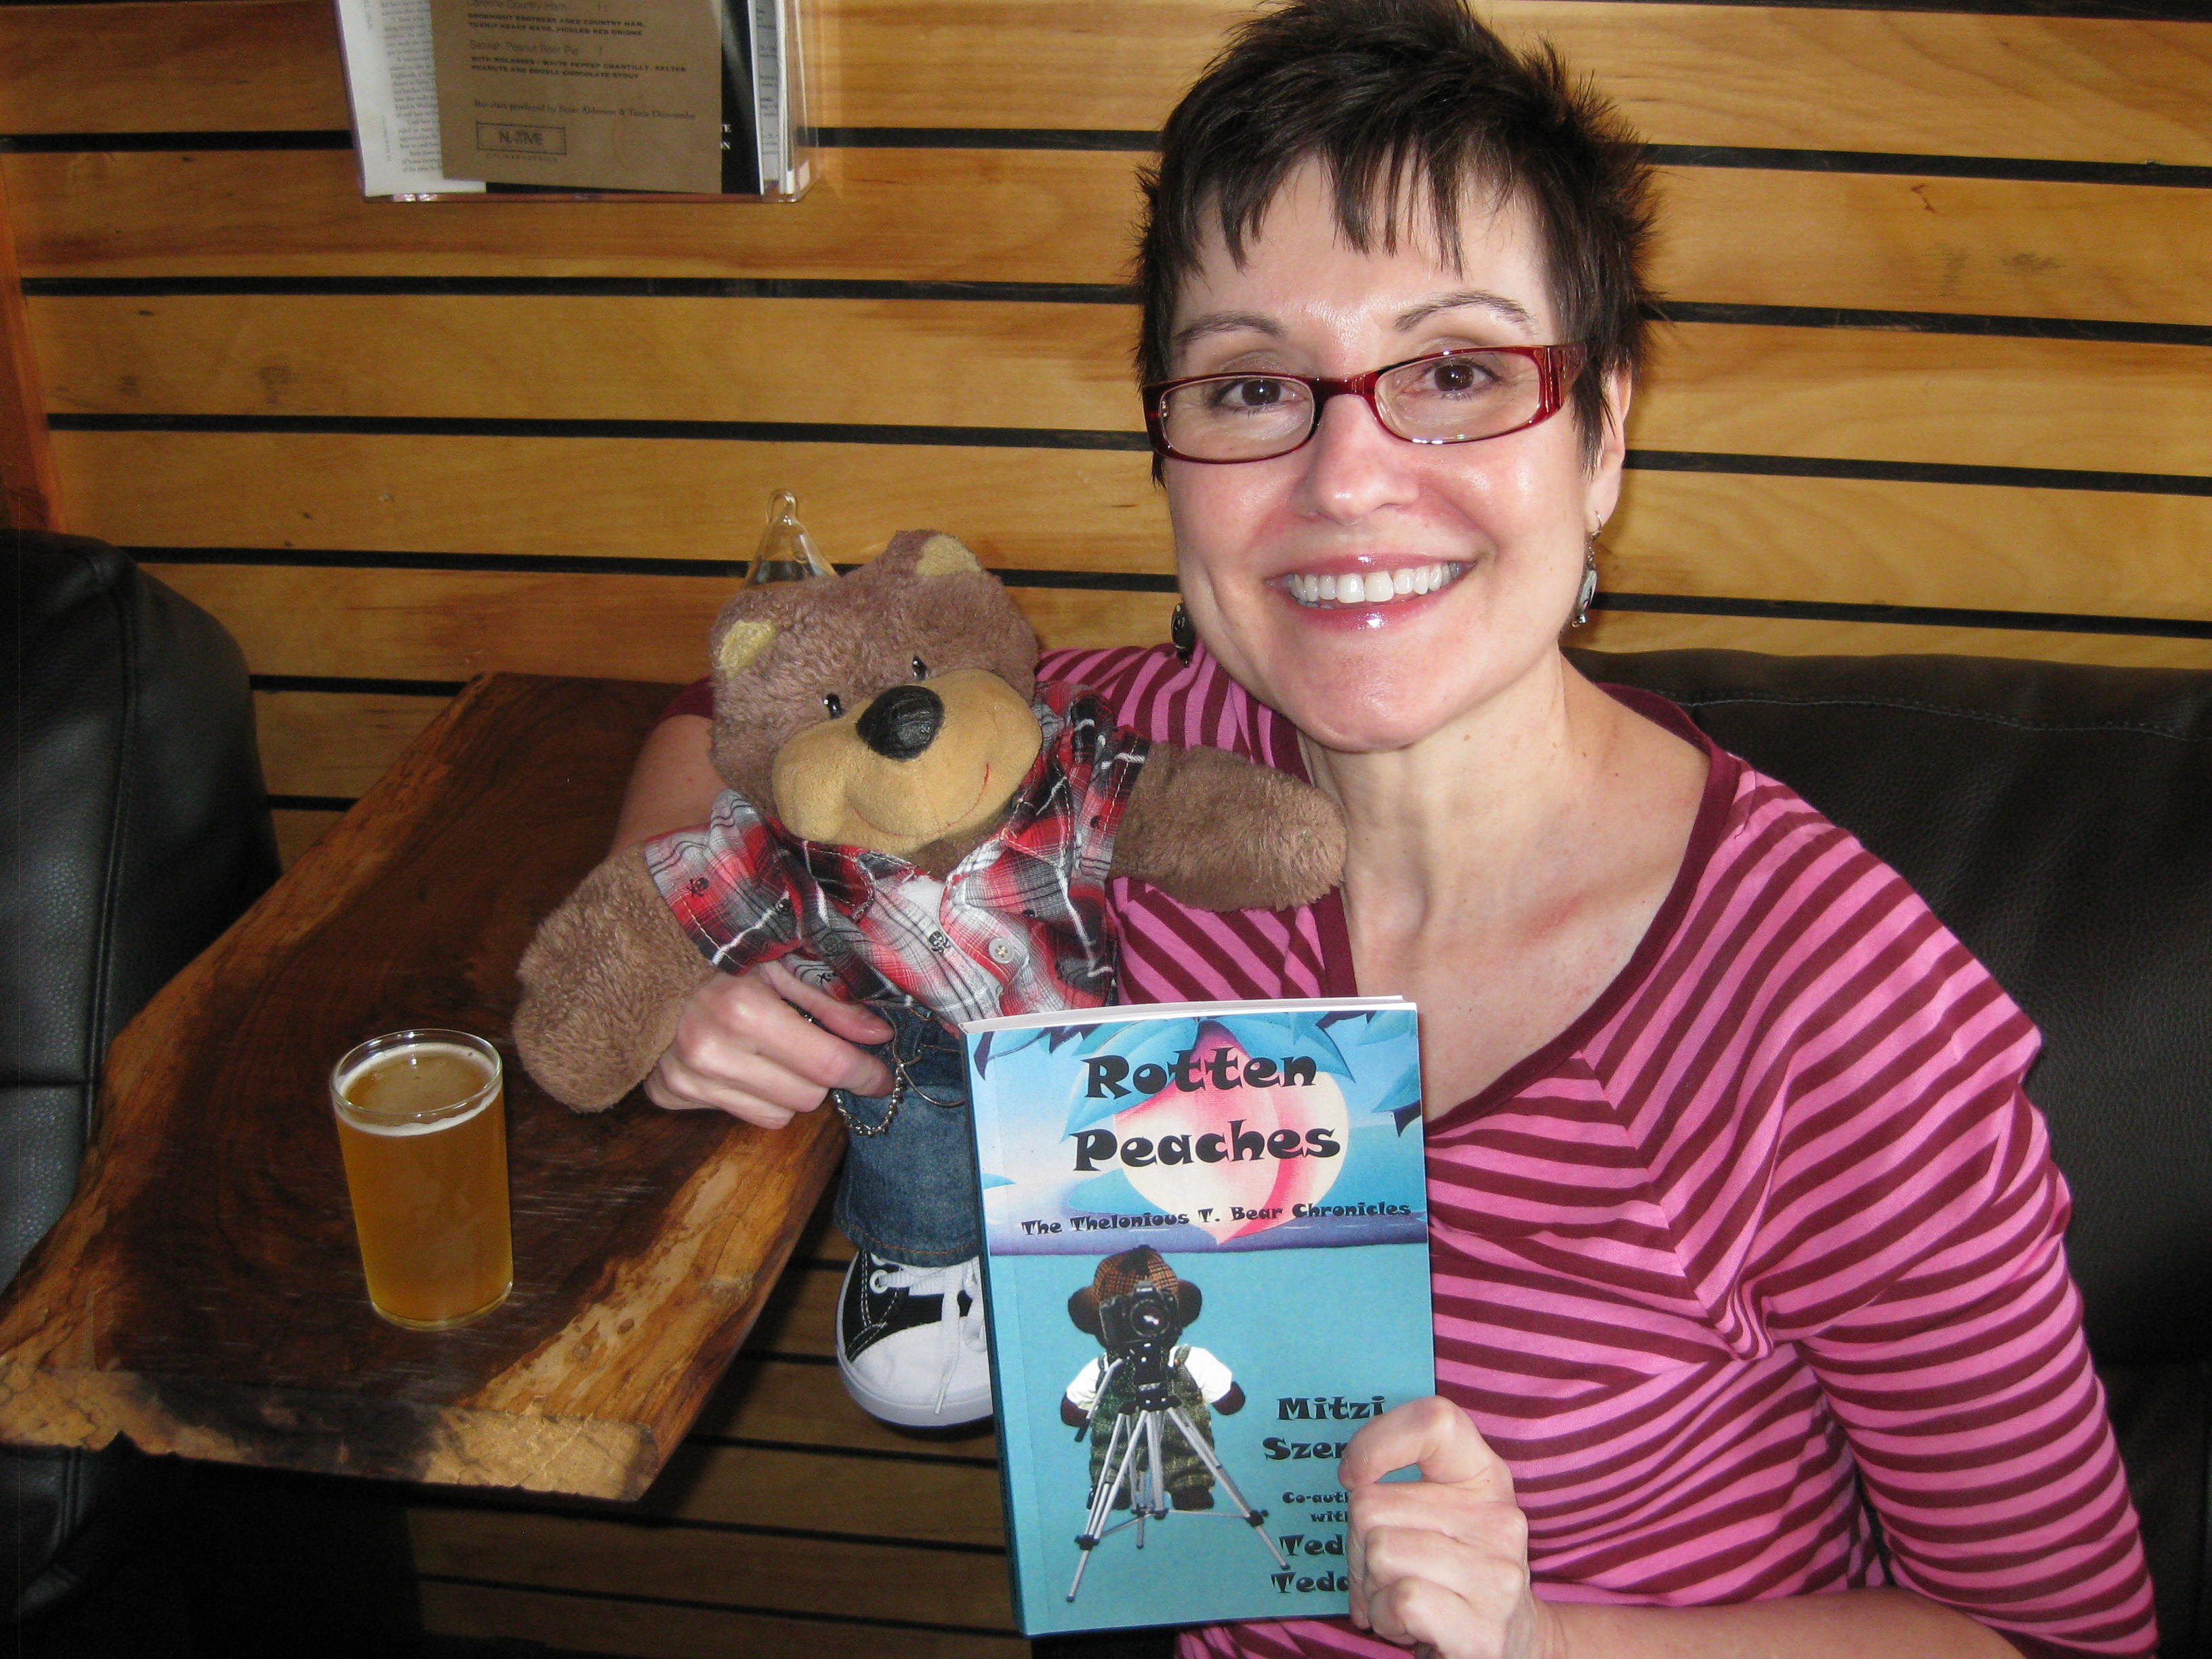 Mitzi Szereto and Teddy Tedaloo celebrate the release of Rotten Peaches (The Thelonious T. Bear Chronicles)